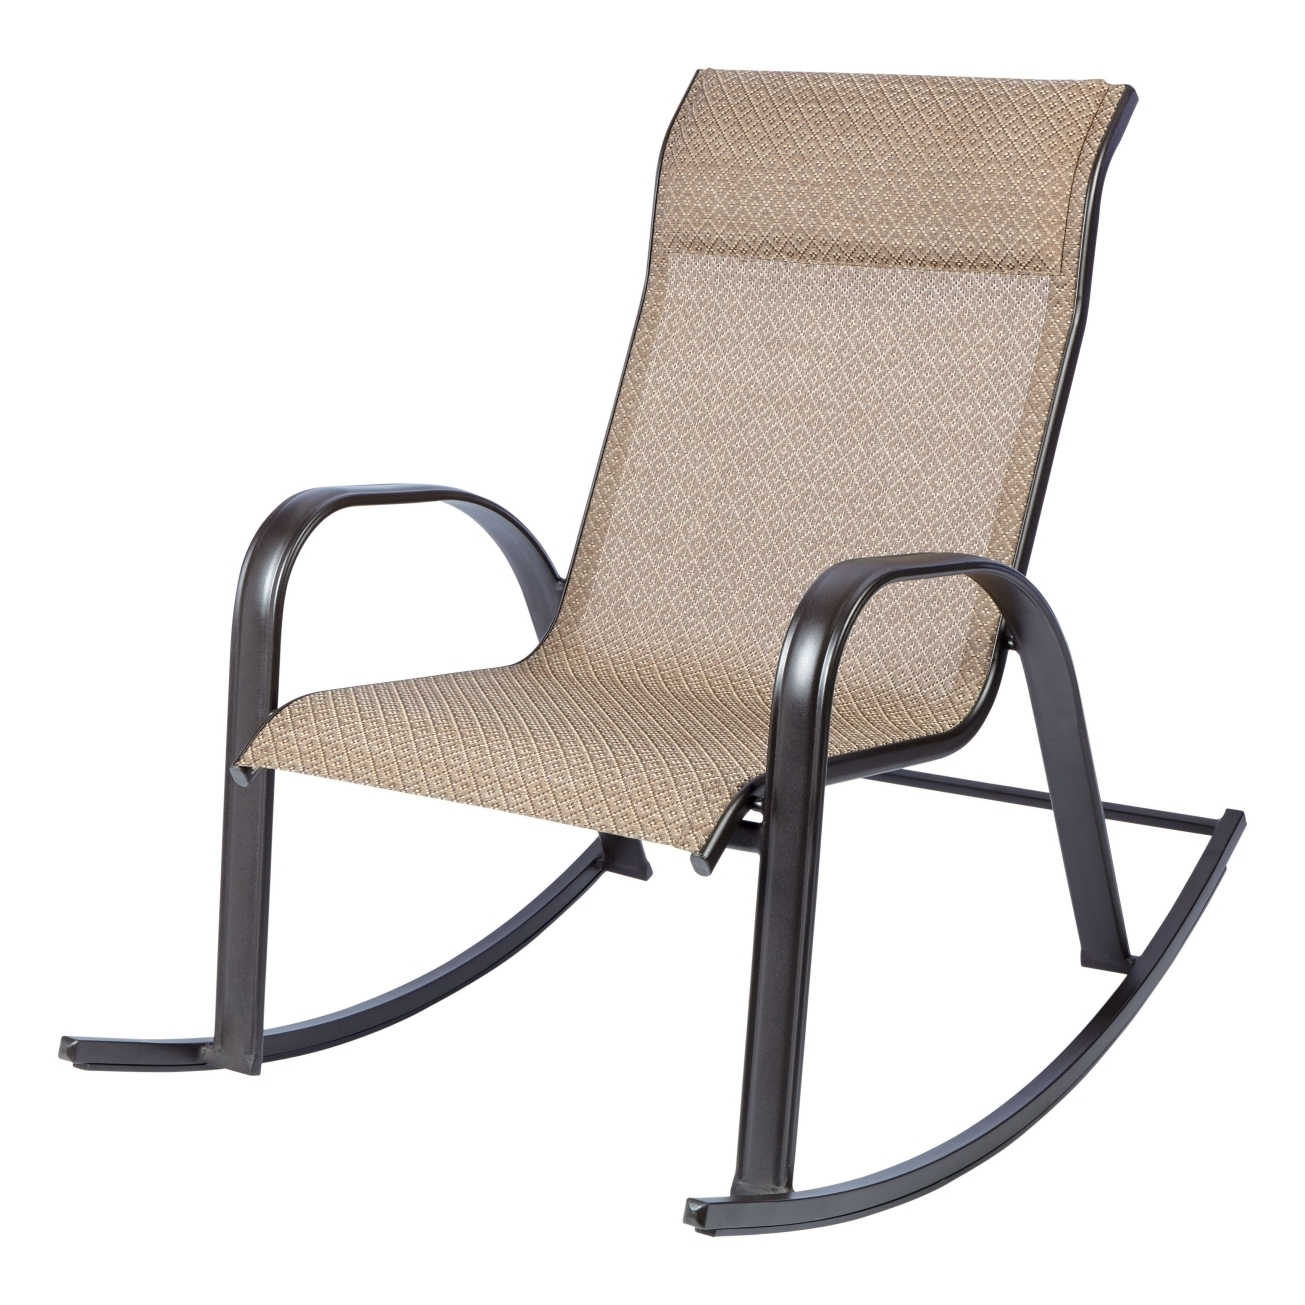 newport rocking chair fabric swivel and footstool image gallery of stackable patio chairs view 1 20 photos living accents brown outdoor dining pertaining to favorite